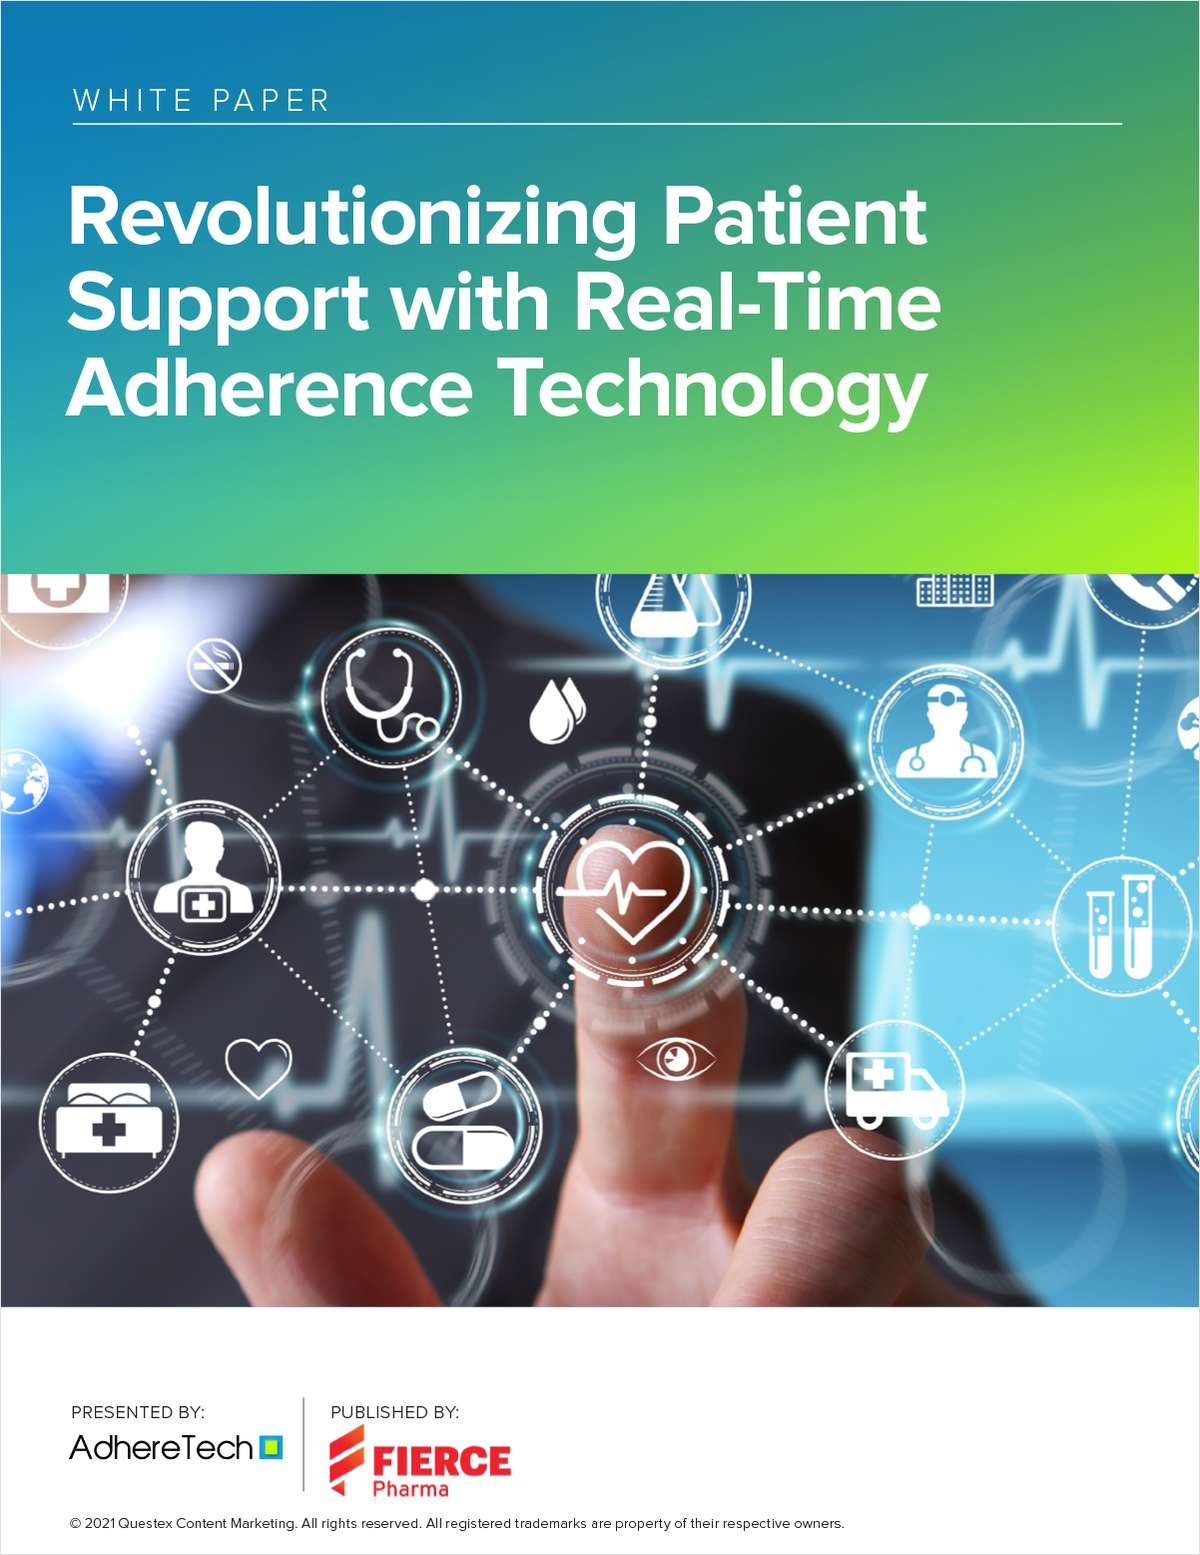 Improving Patient Outcomes with Real-Time Medication Adherence Technology